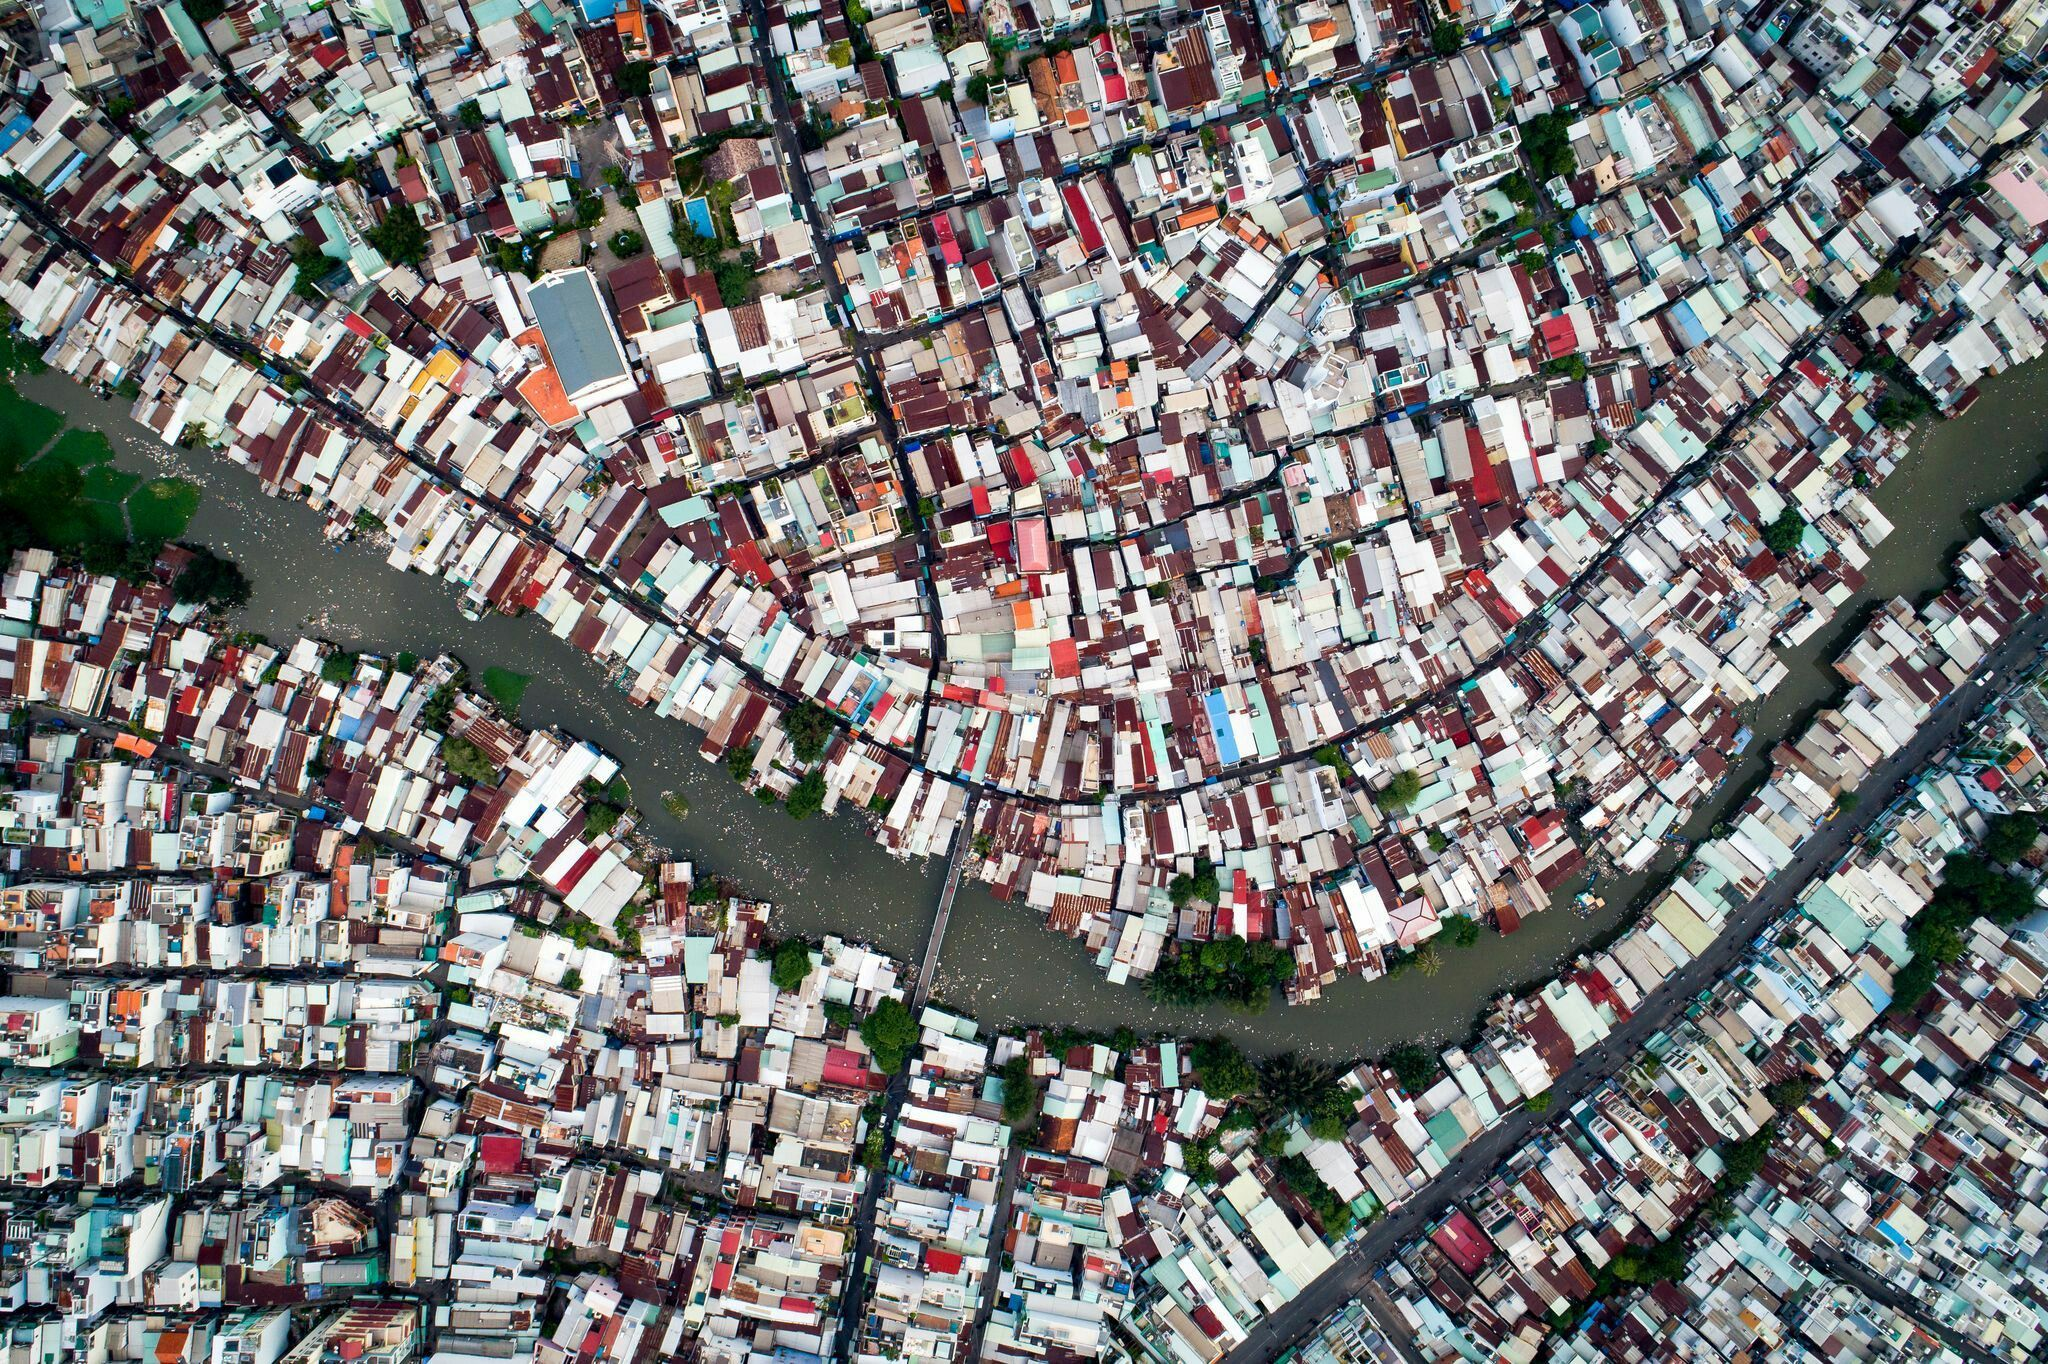 The Sprawl From Above This Neighborhood In Ho Chi Minh City